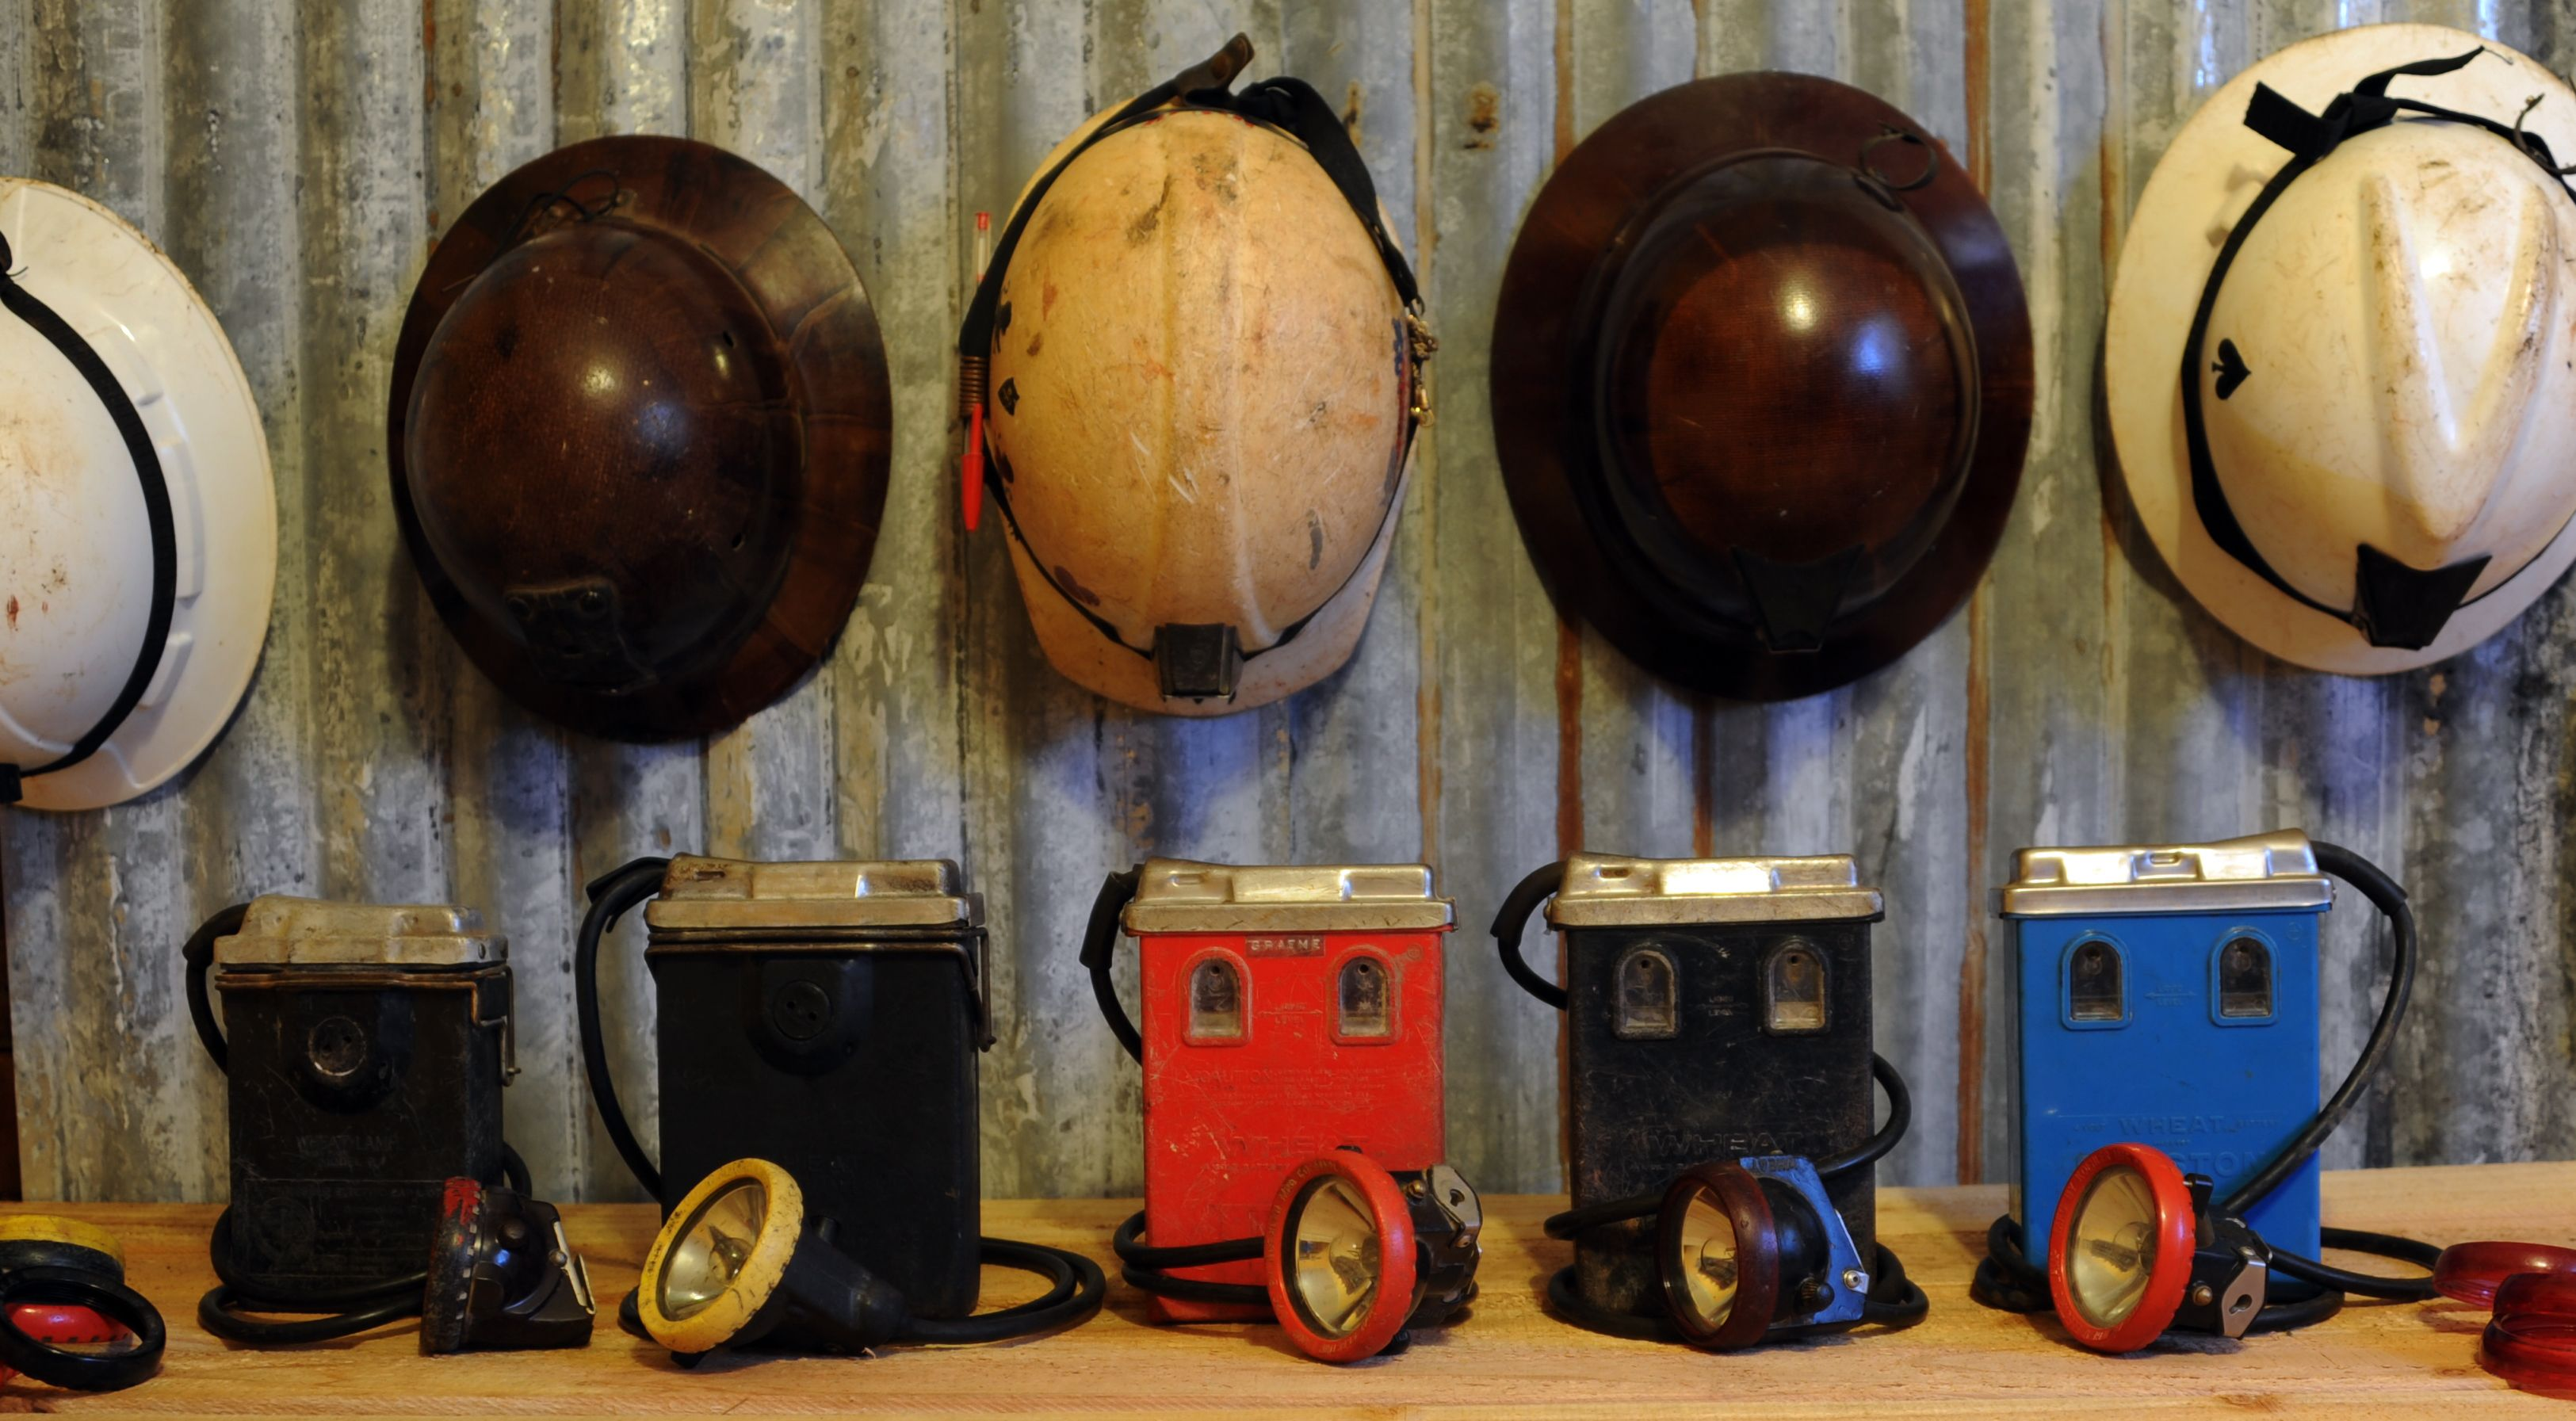 Various Types Of Wheat Lamps From Left To Right Model Q Model W Markii Mark V And A Markii With A Blue Battery Ma Mining Equipment Bisbee Different Styles